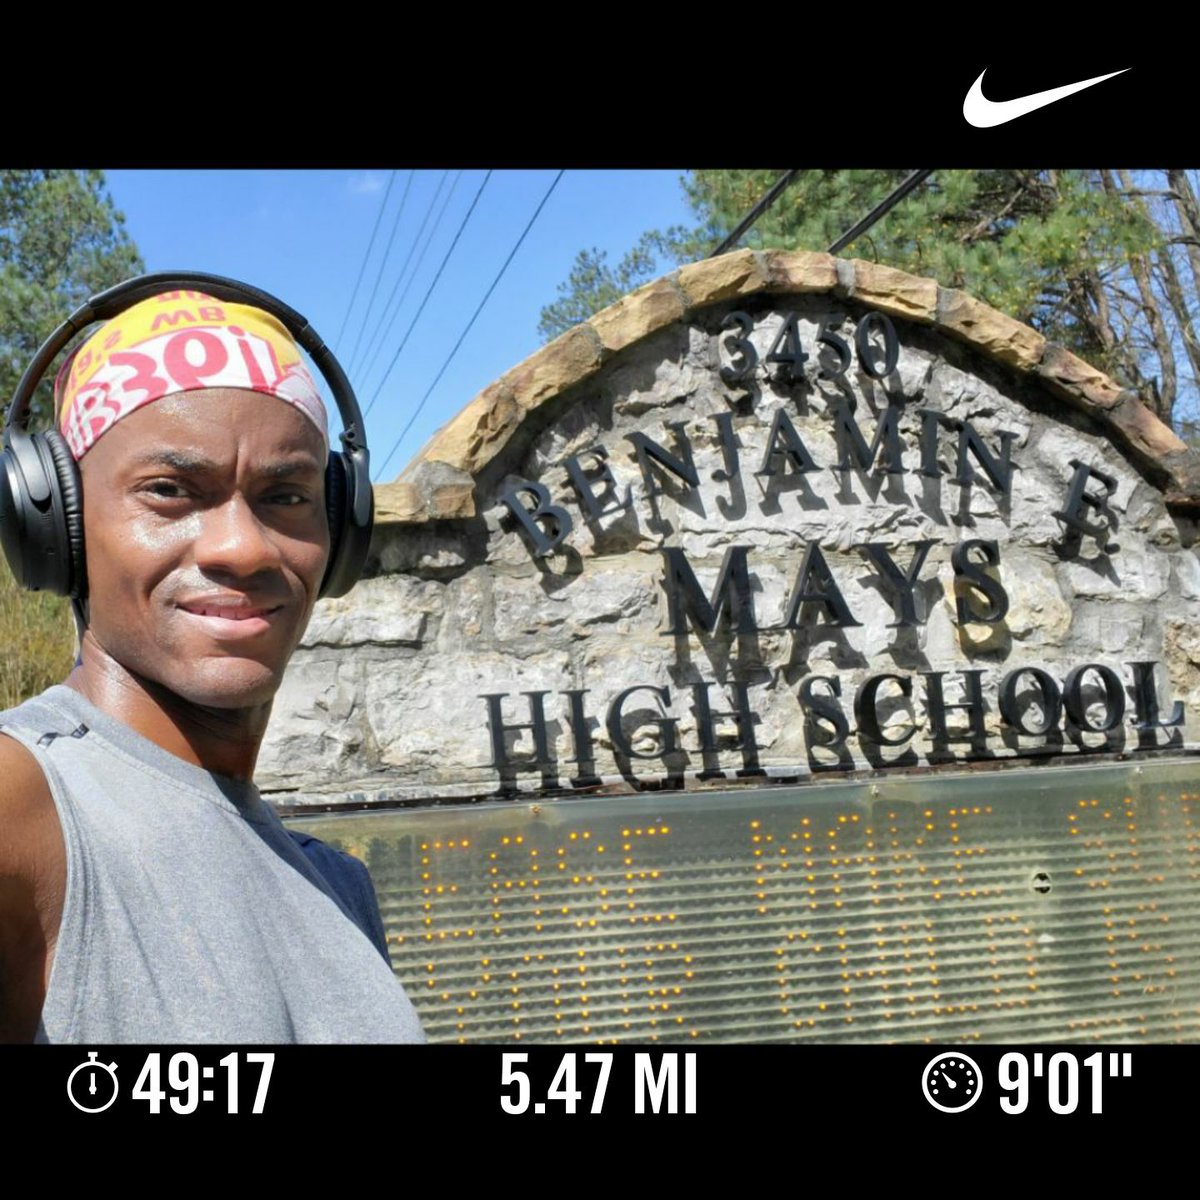 I killed those hills at my high school of @APSMaysRaiders this morning in Southwest @CityofAtlanta. Keeping fit and keeping my #SocialDistanacing while running @RunnerBliss. Keep that body movin y'all. #blackmenrun #ThursdayMotivationpic.twitter.com/RnImvkM00A